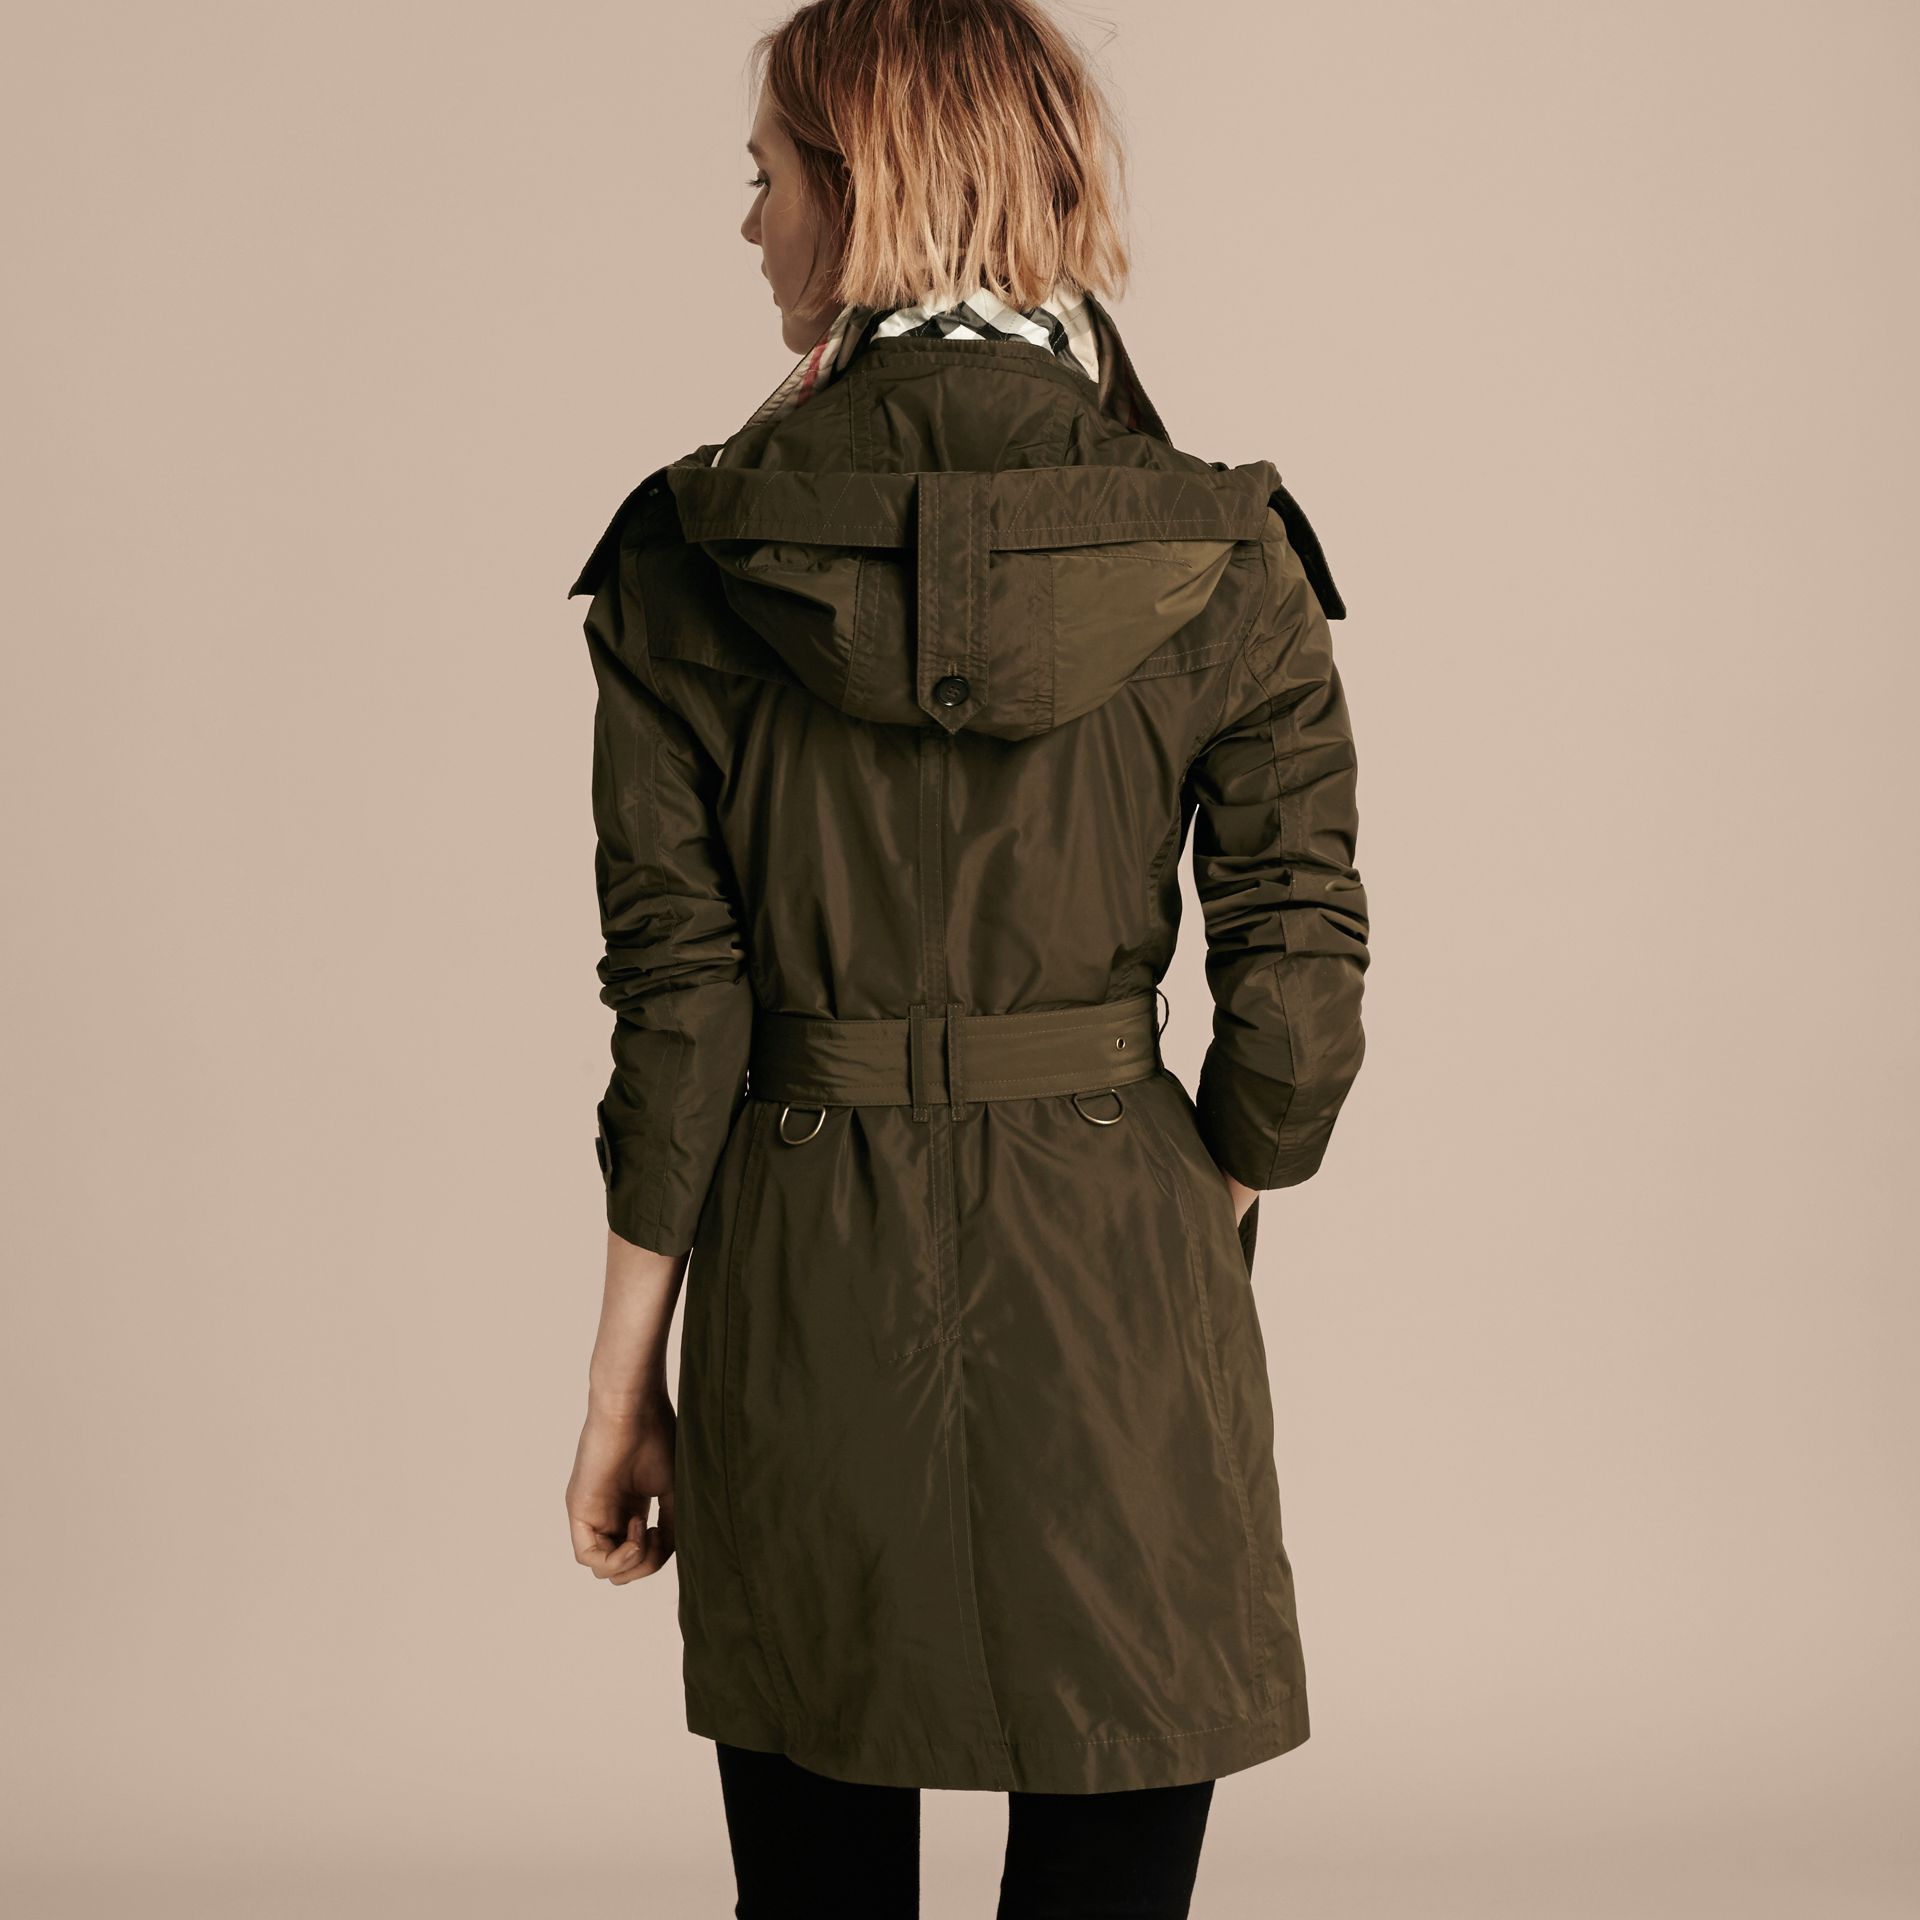 Taffeta Trench Coat with Detachable Hood in Dark Olive - Women | Burberry Singapore - gallery image 3